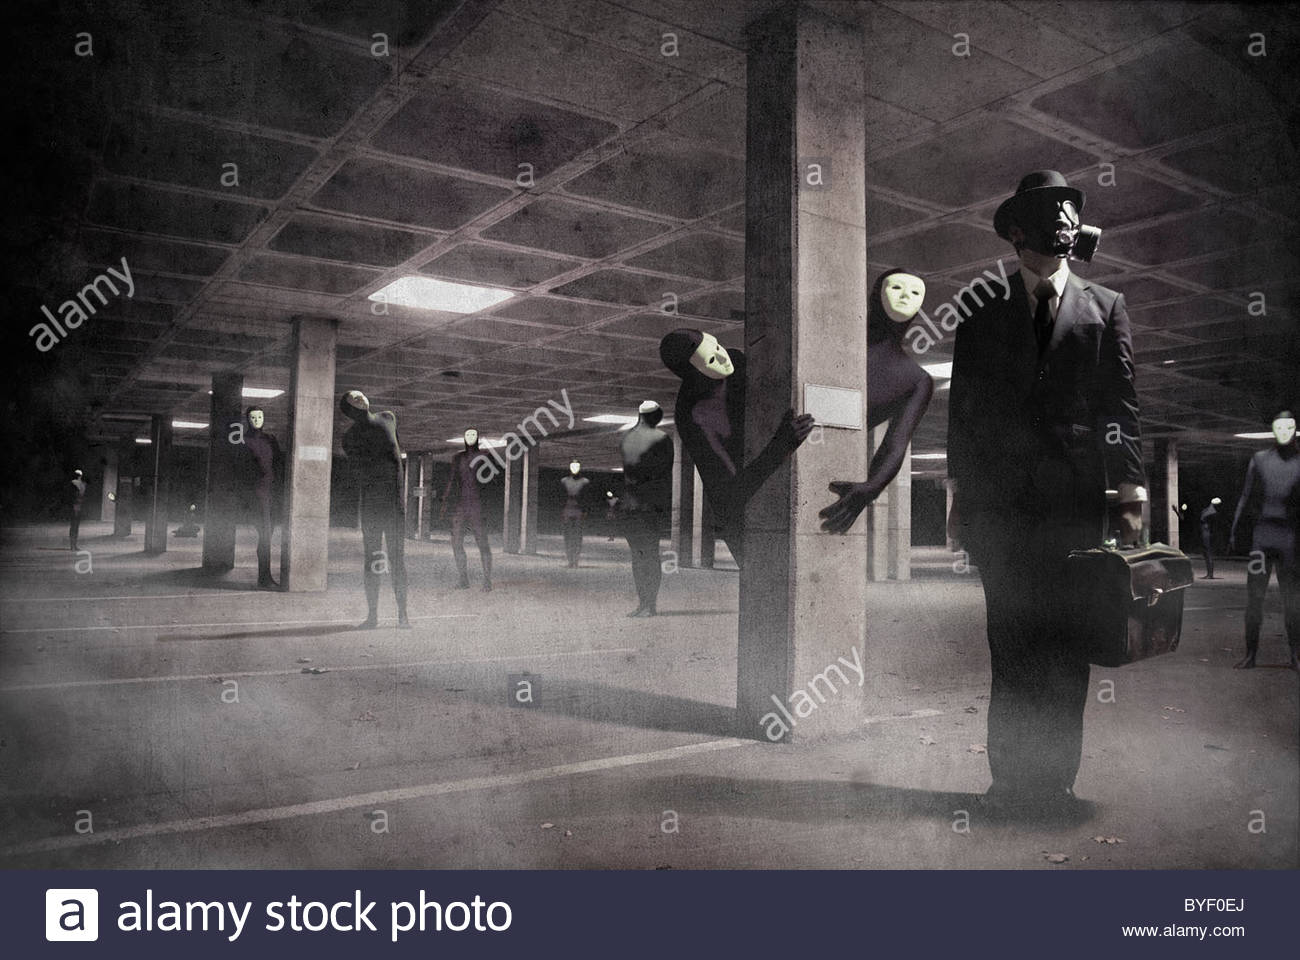 Conceptual image of business man wearing gas mask holding briefcase in underground car park with masked figures - Stock Image